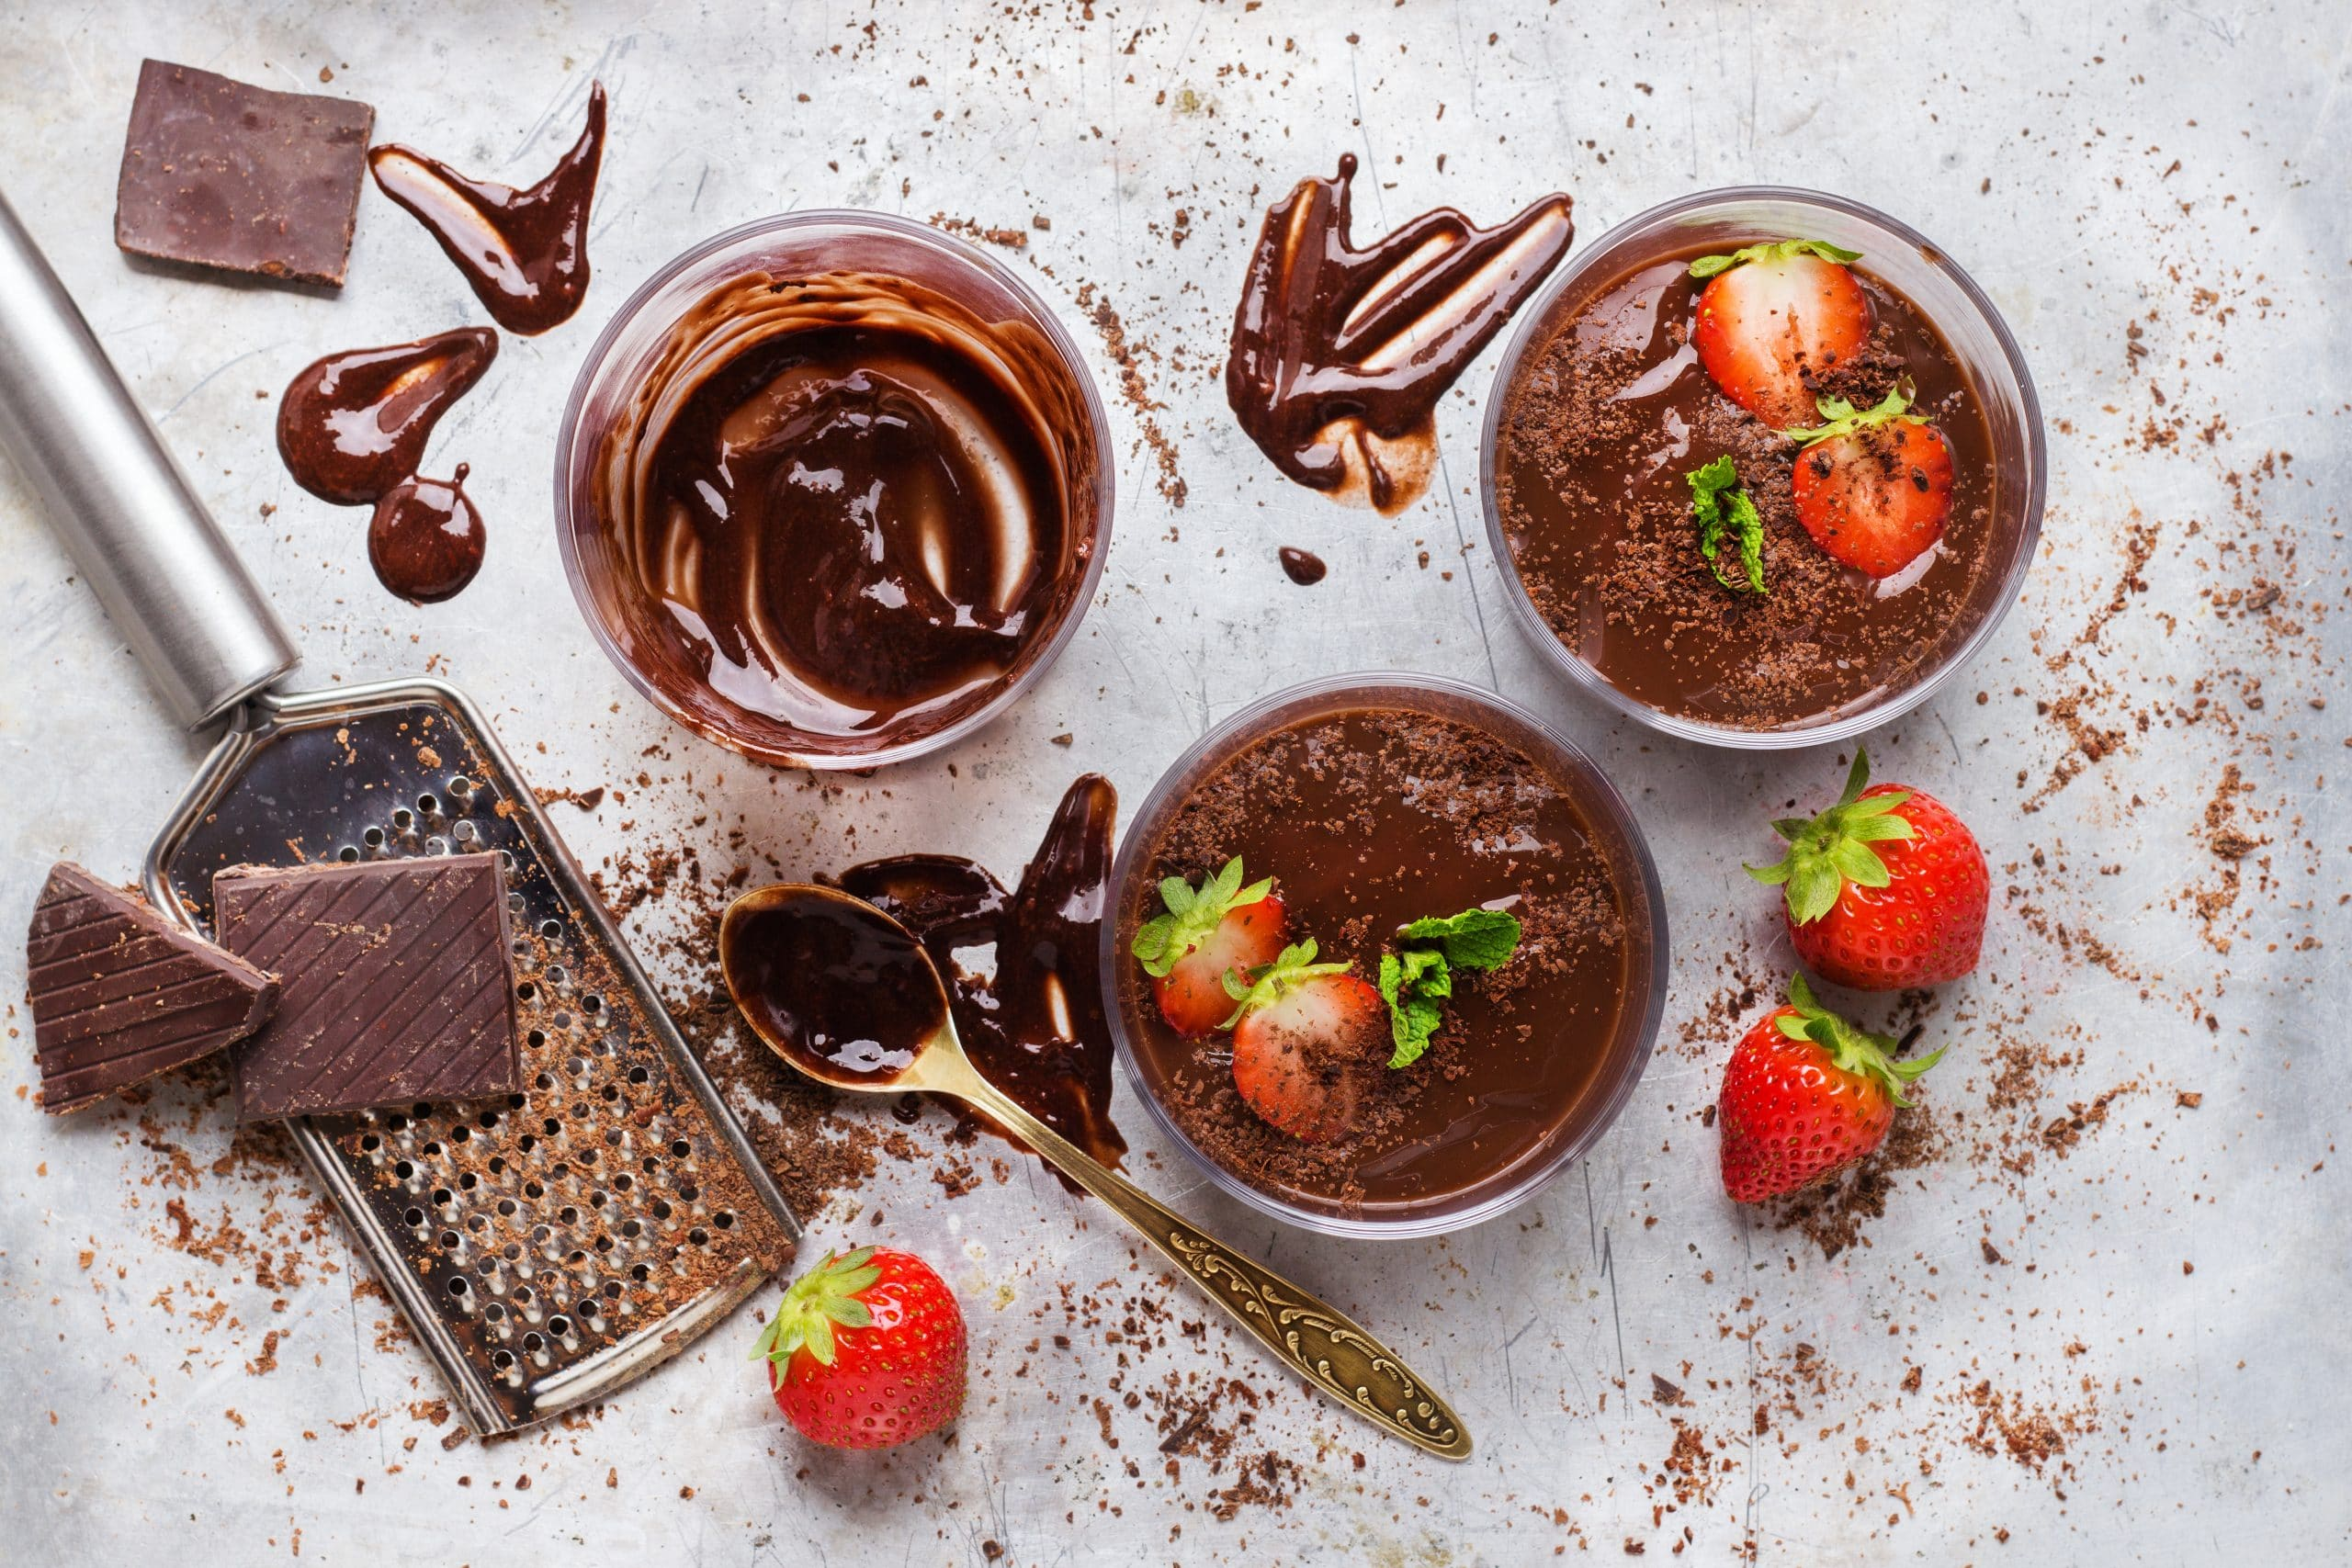 How to prepare chocolate mousse